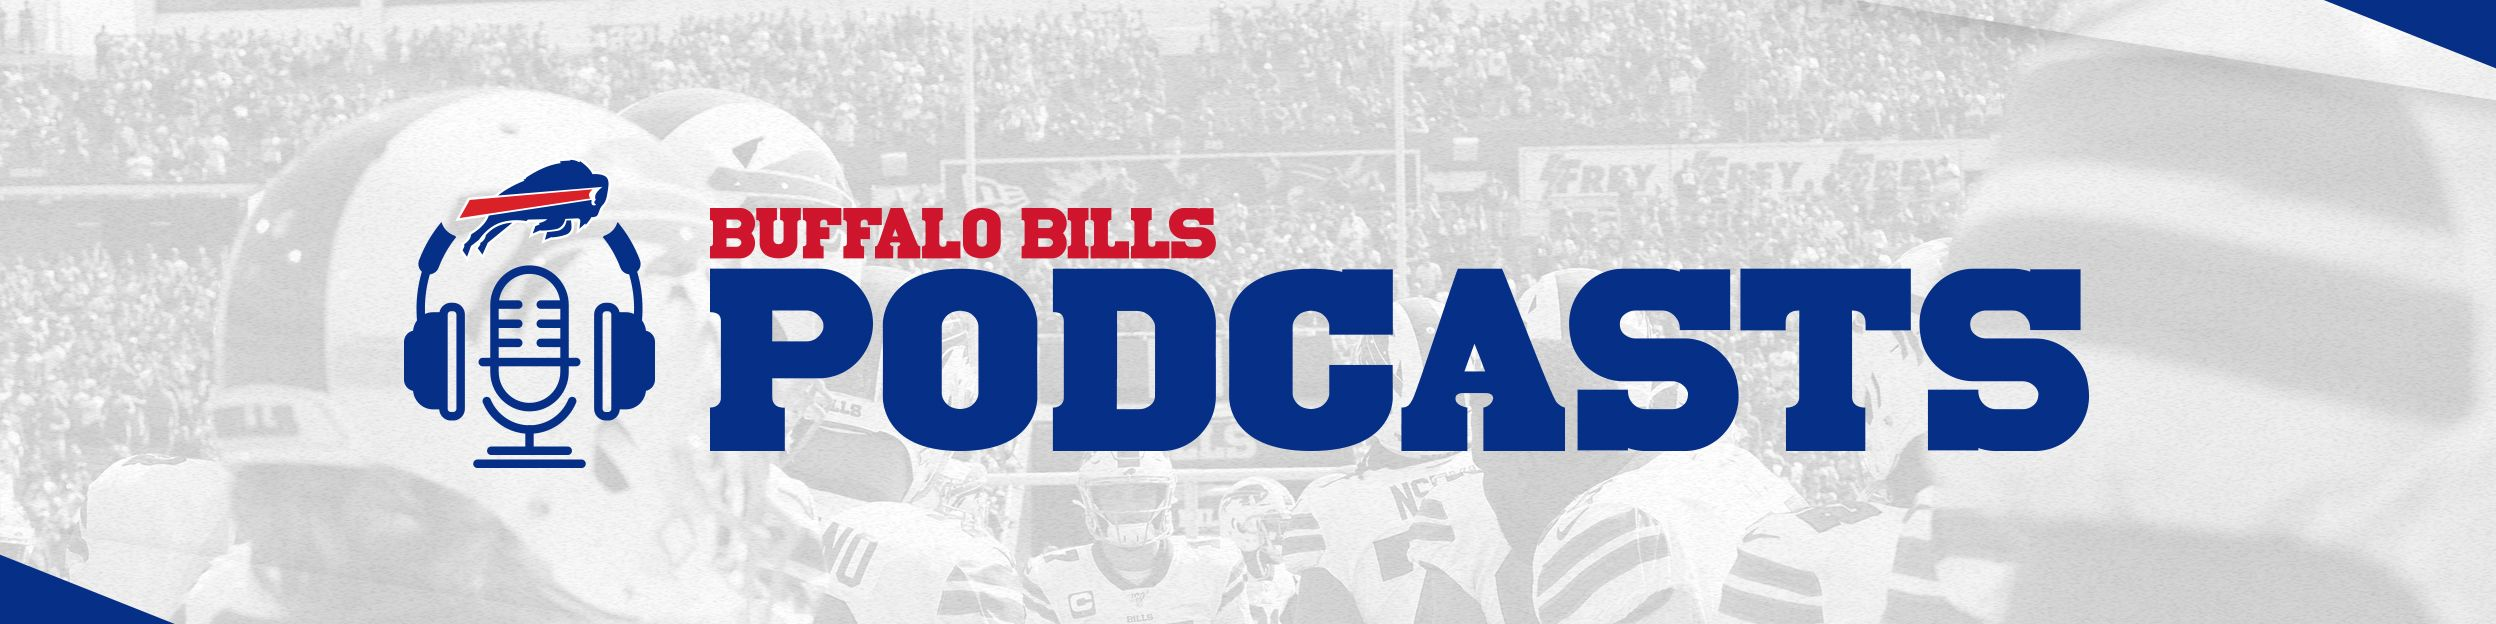 BBMKT-03376 - Buffalo Bills 2019 Podcast Promotion_FINALFILES_2496x624_PageHeader